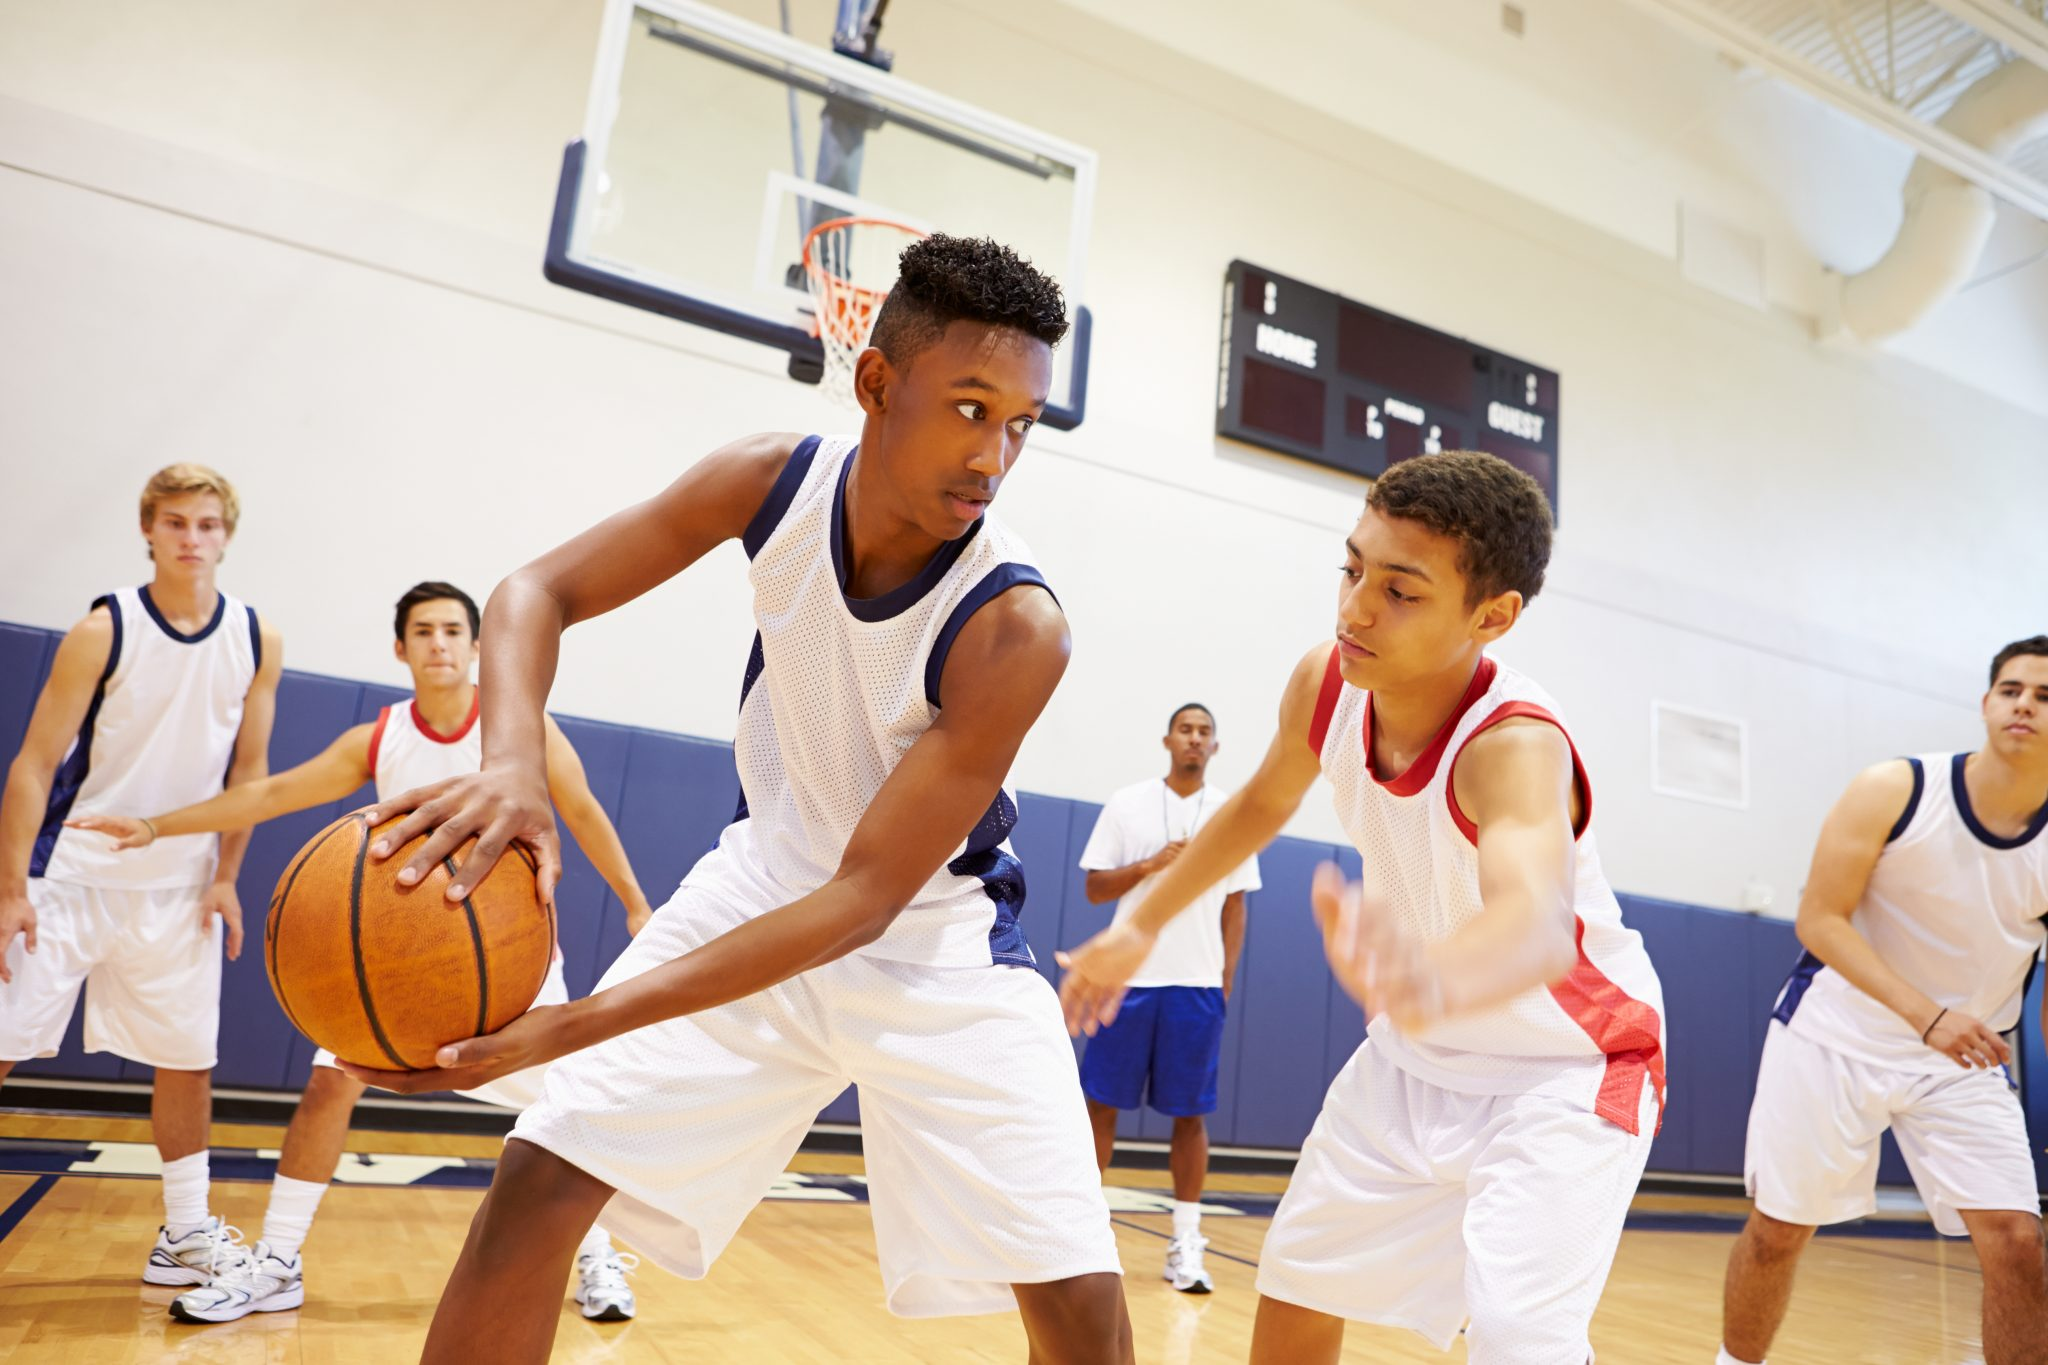 how youth sport harms mental health